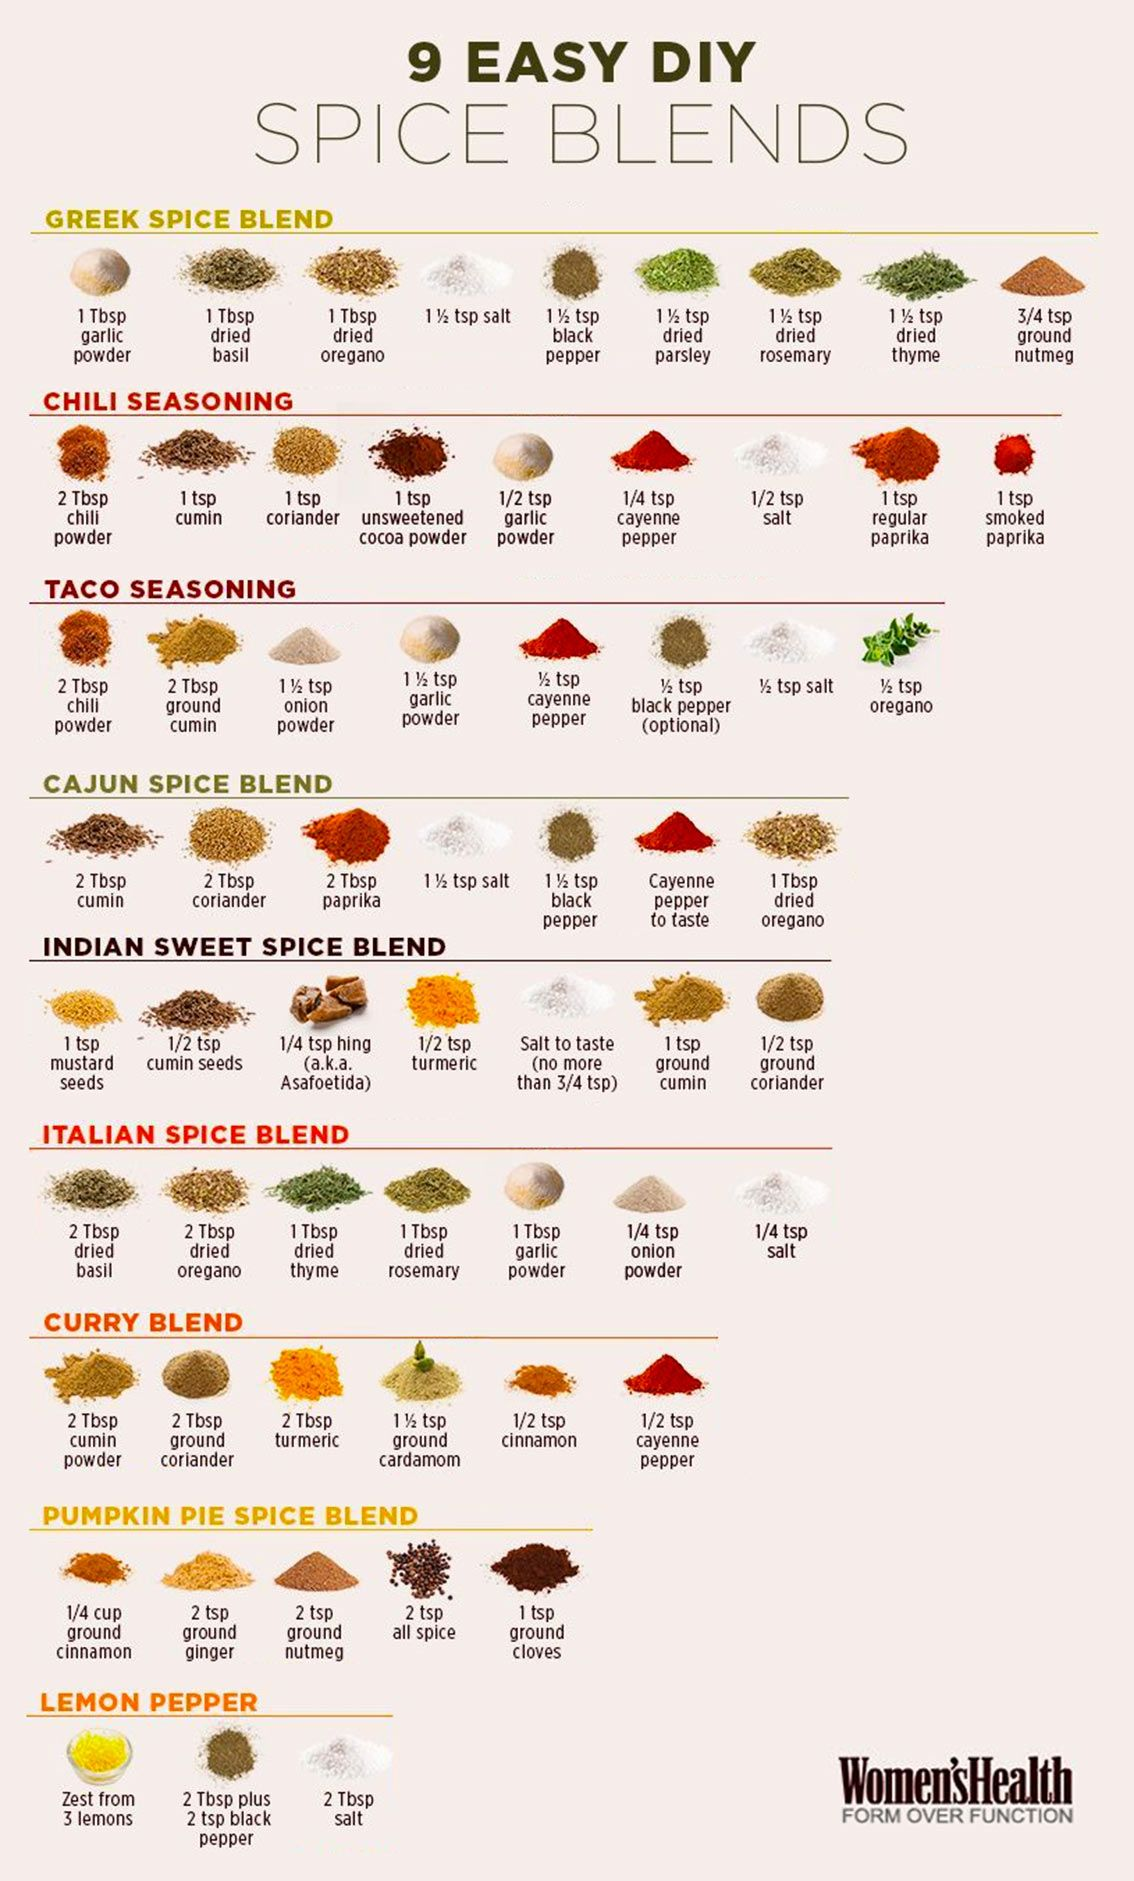 9 Easy Homemade Spice Blends [Infographic]